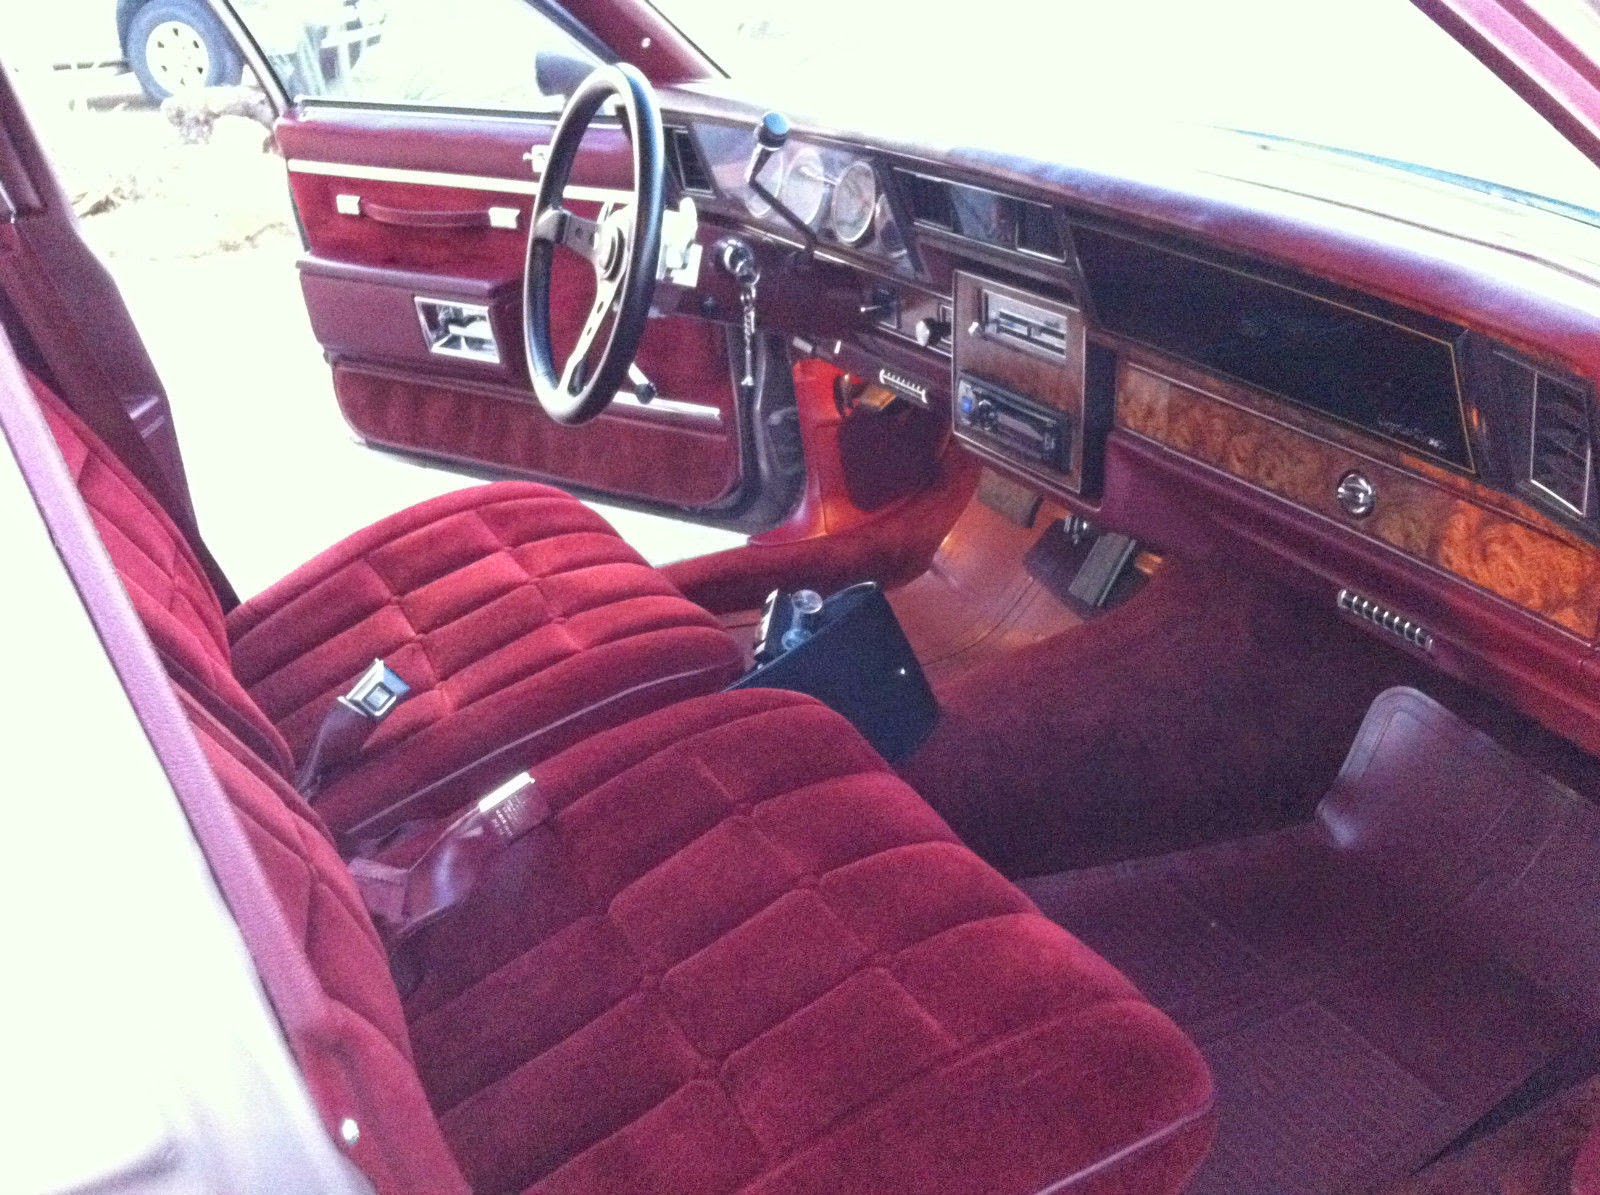 The seller has installed a gt grant steering wheel and some kind of aftermarket gauges but left the plush elmo hide seats carpet door cards alone